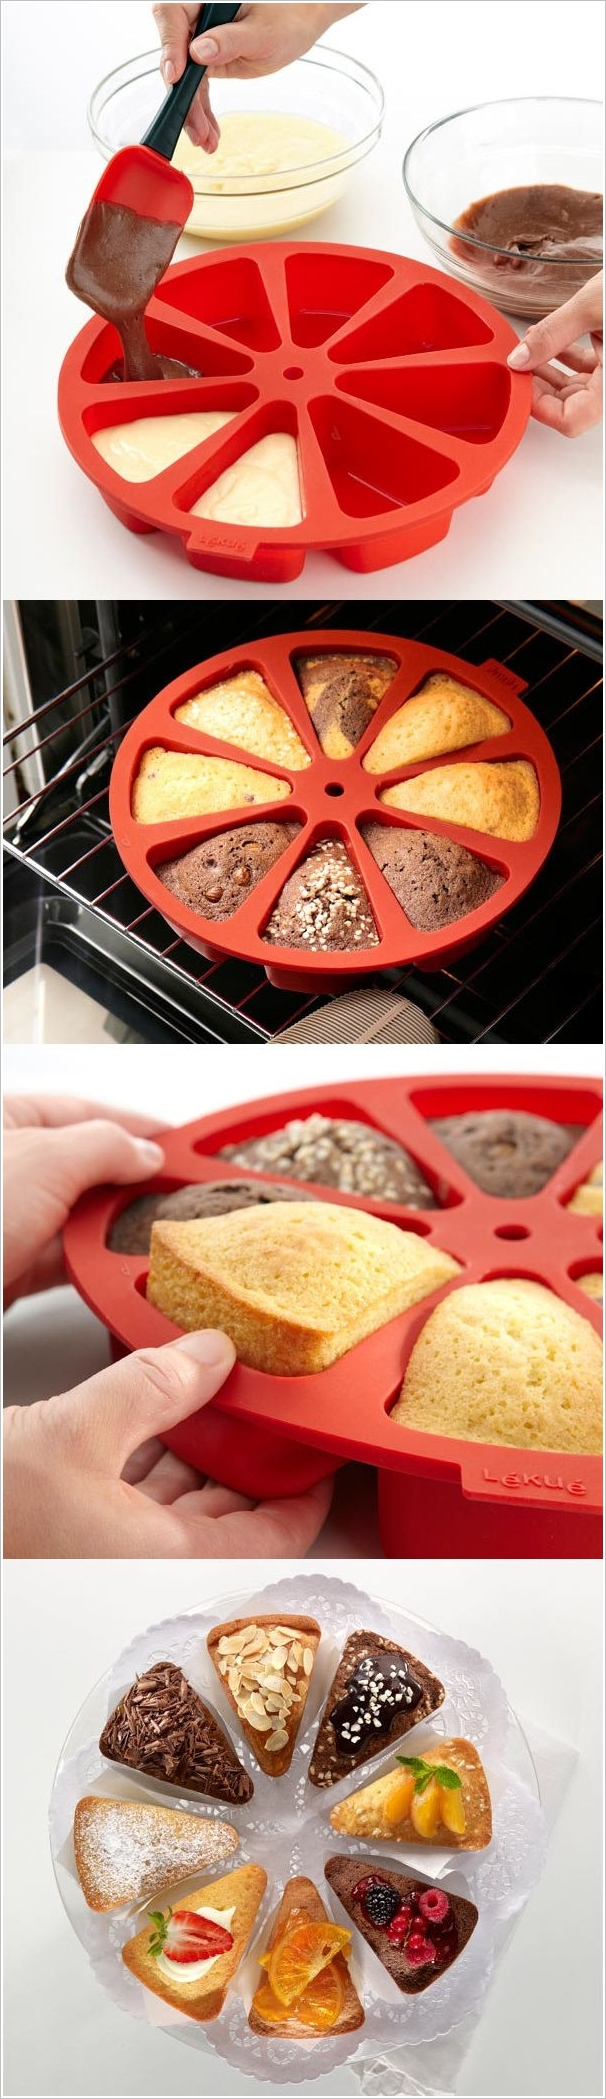 10 Awesome Kitchen Products That Will Make You Say Wow